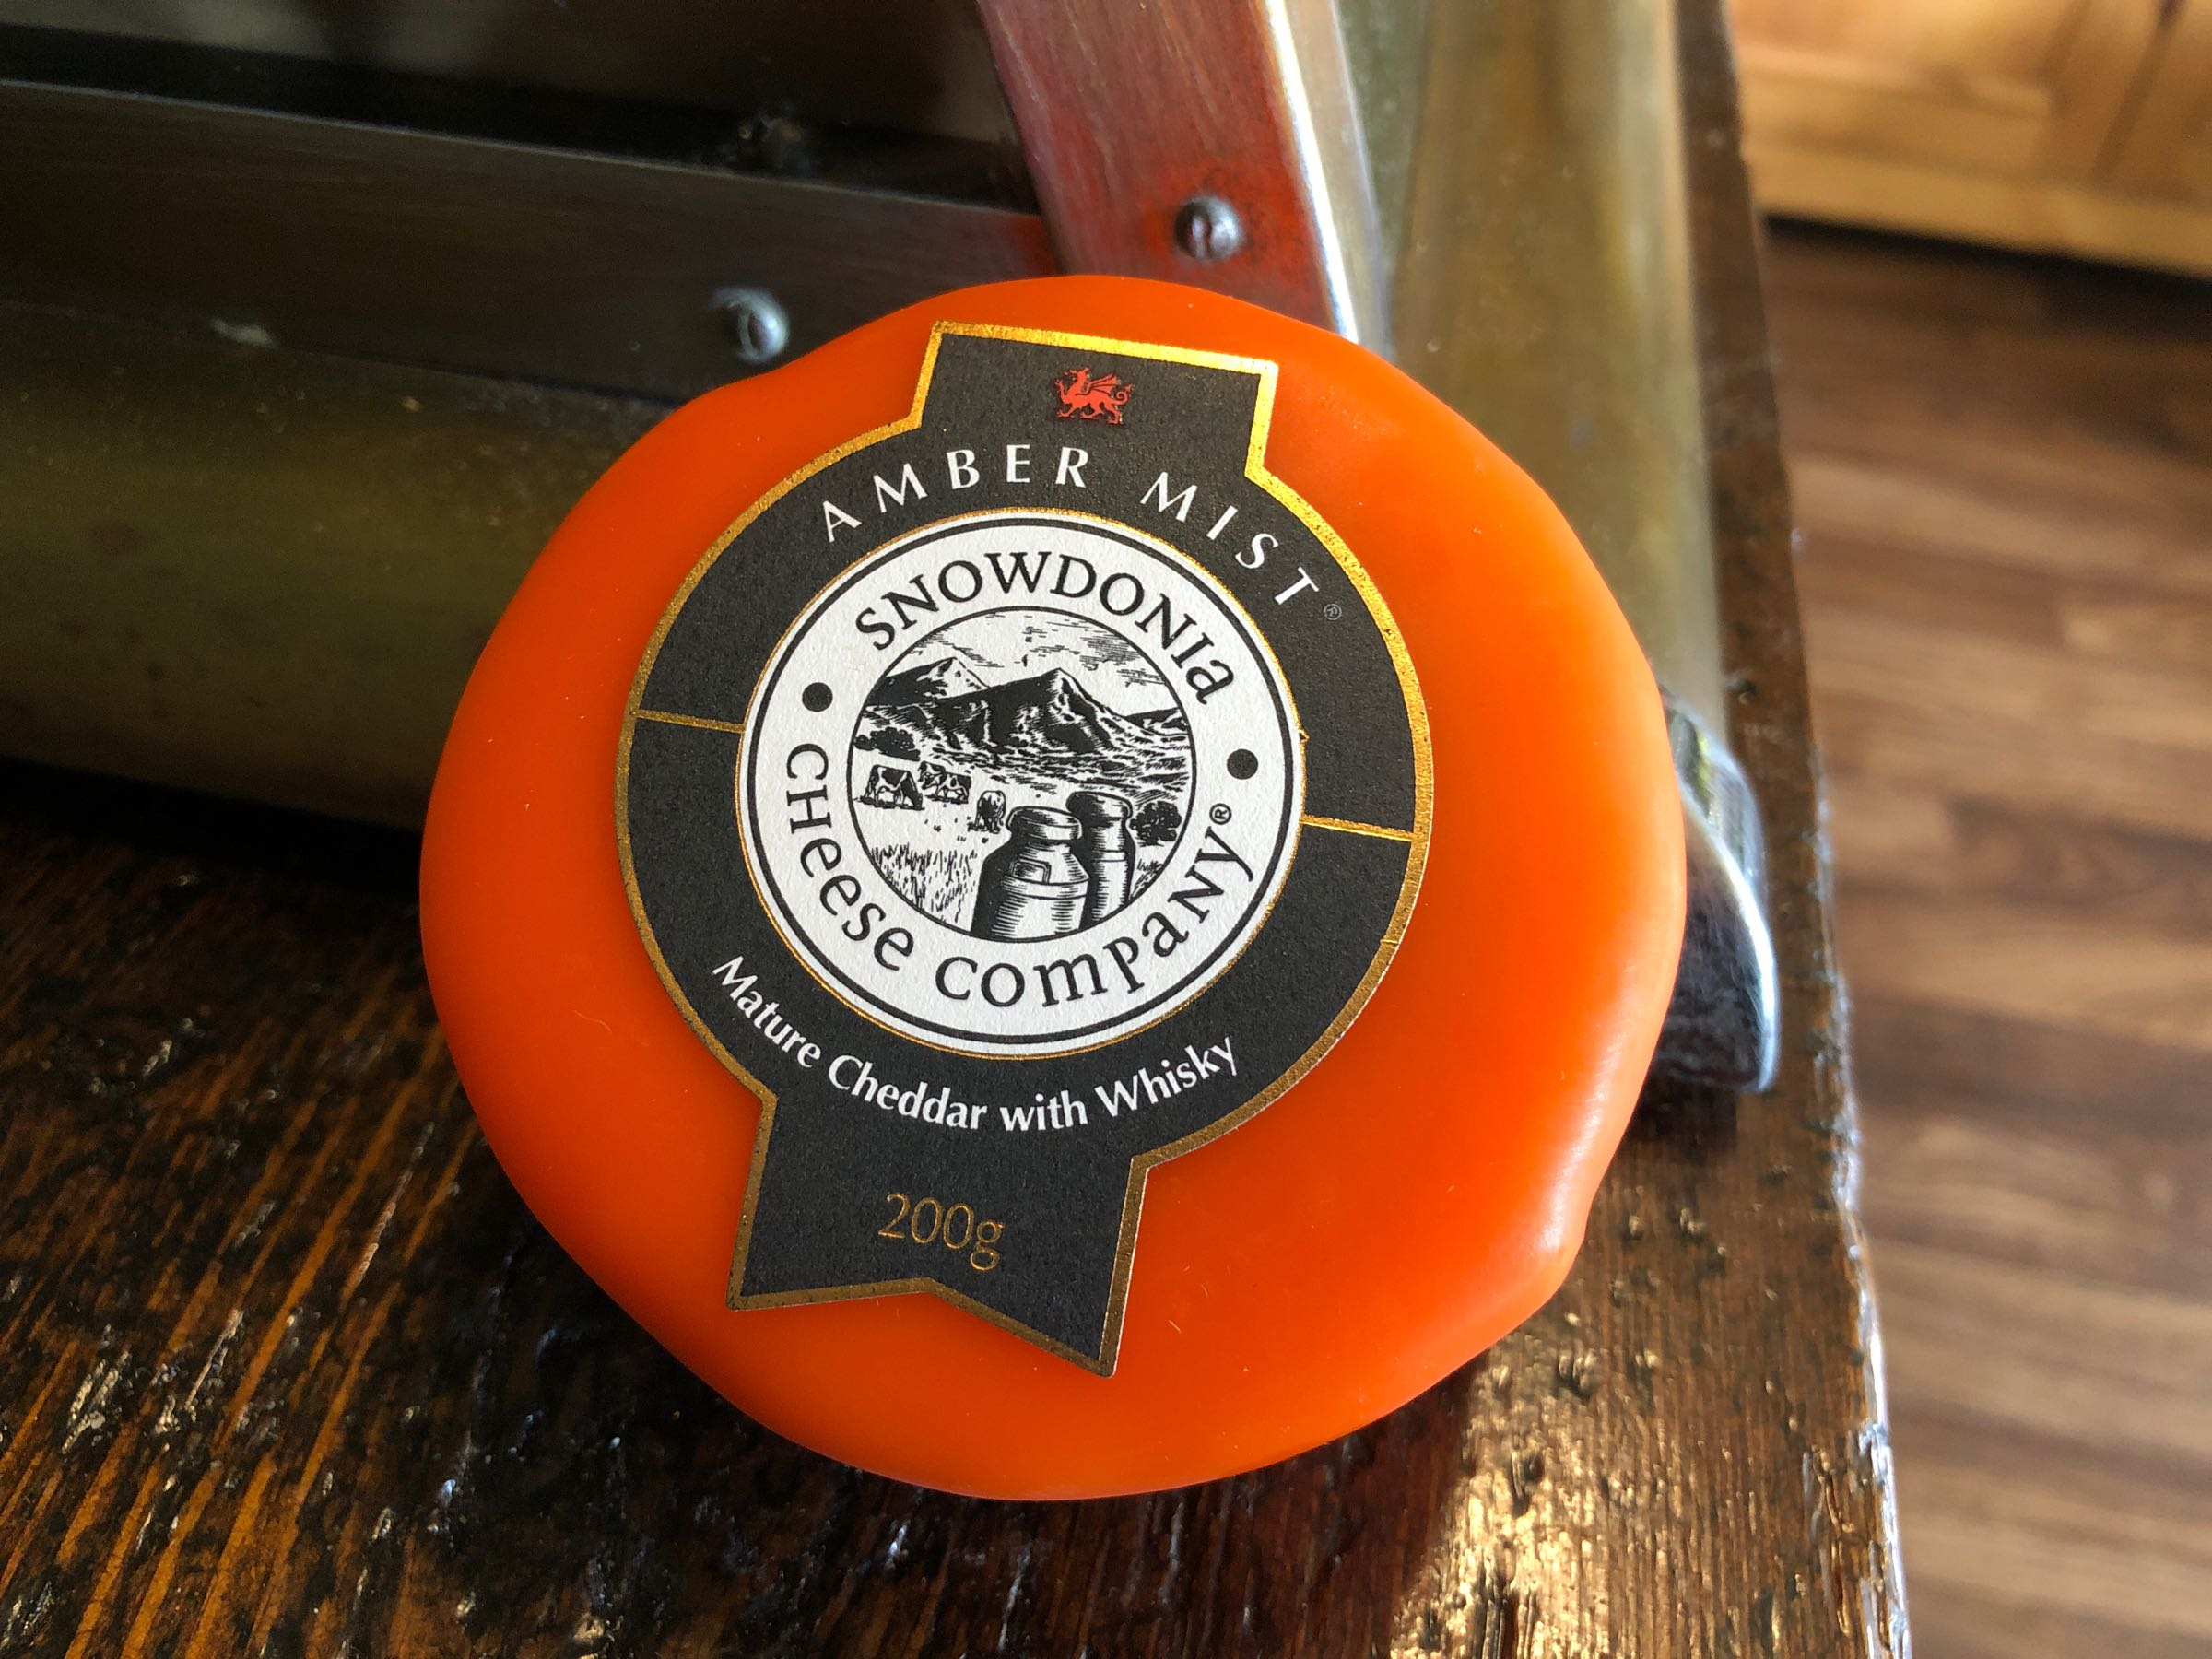 Snowdonia Cheese Co. Amber Mist 200g